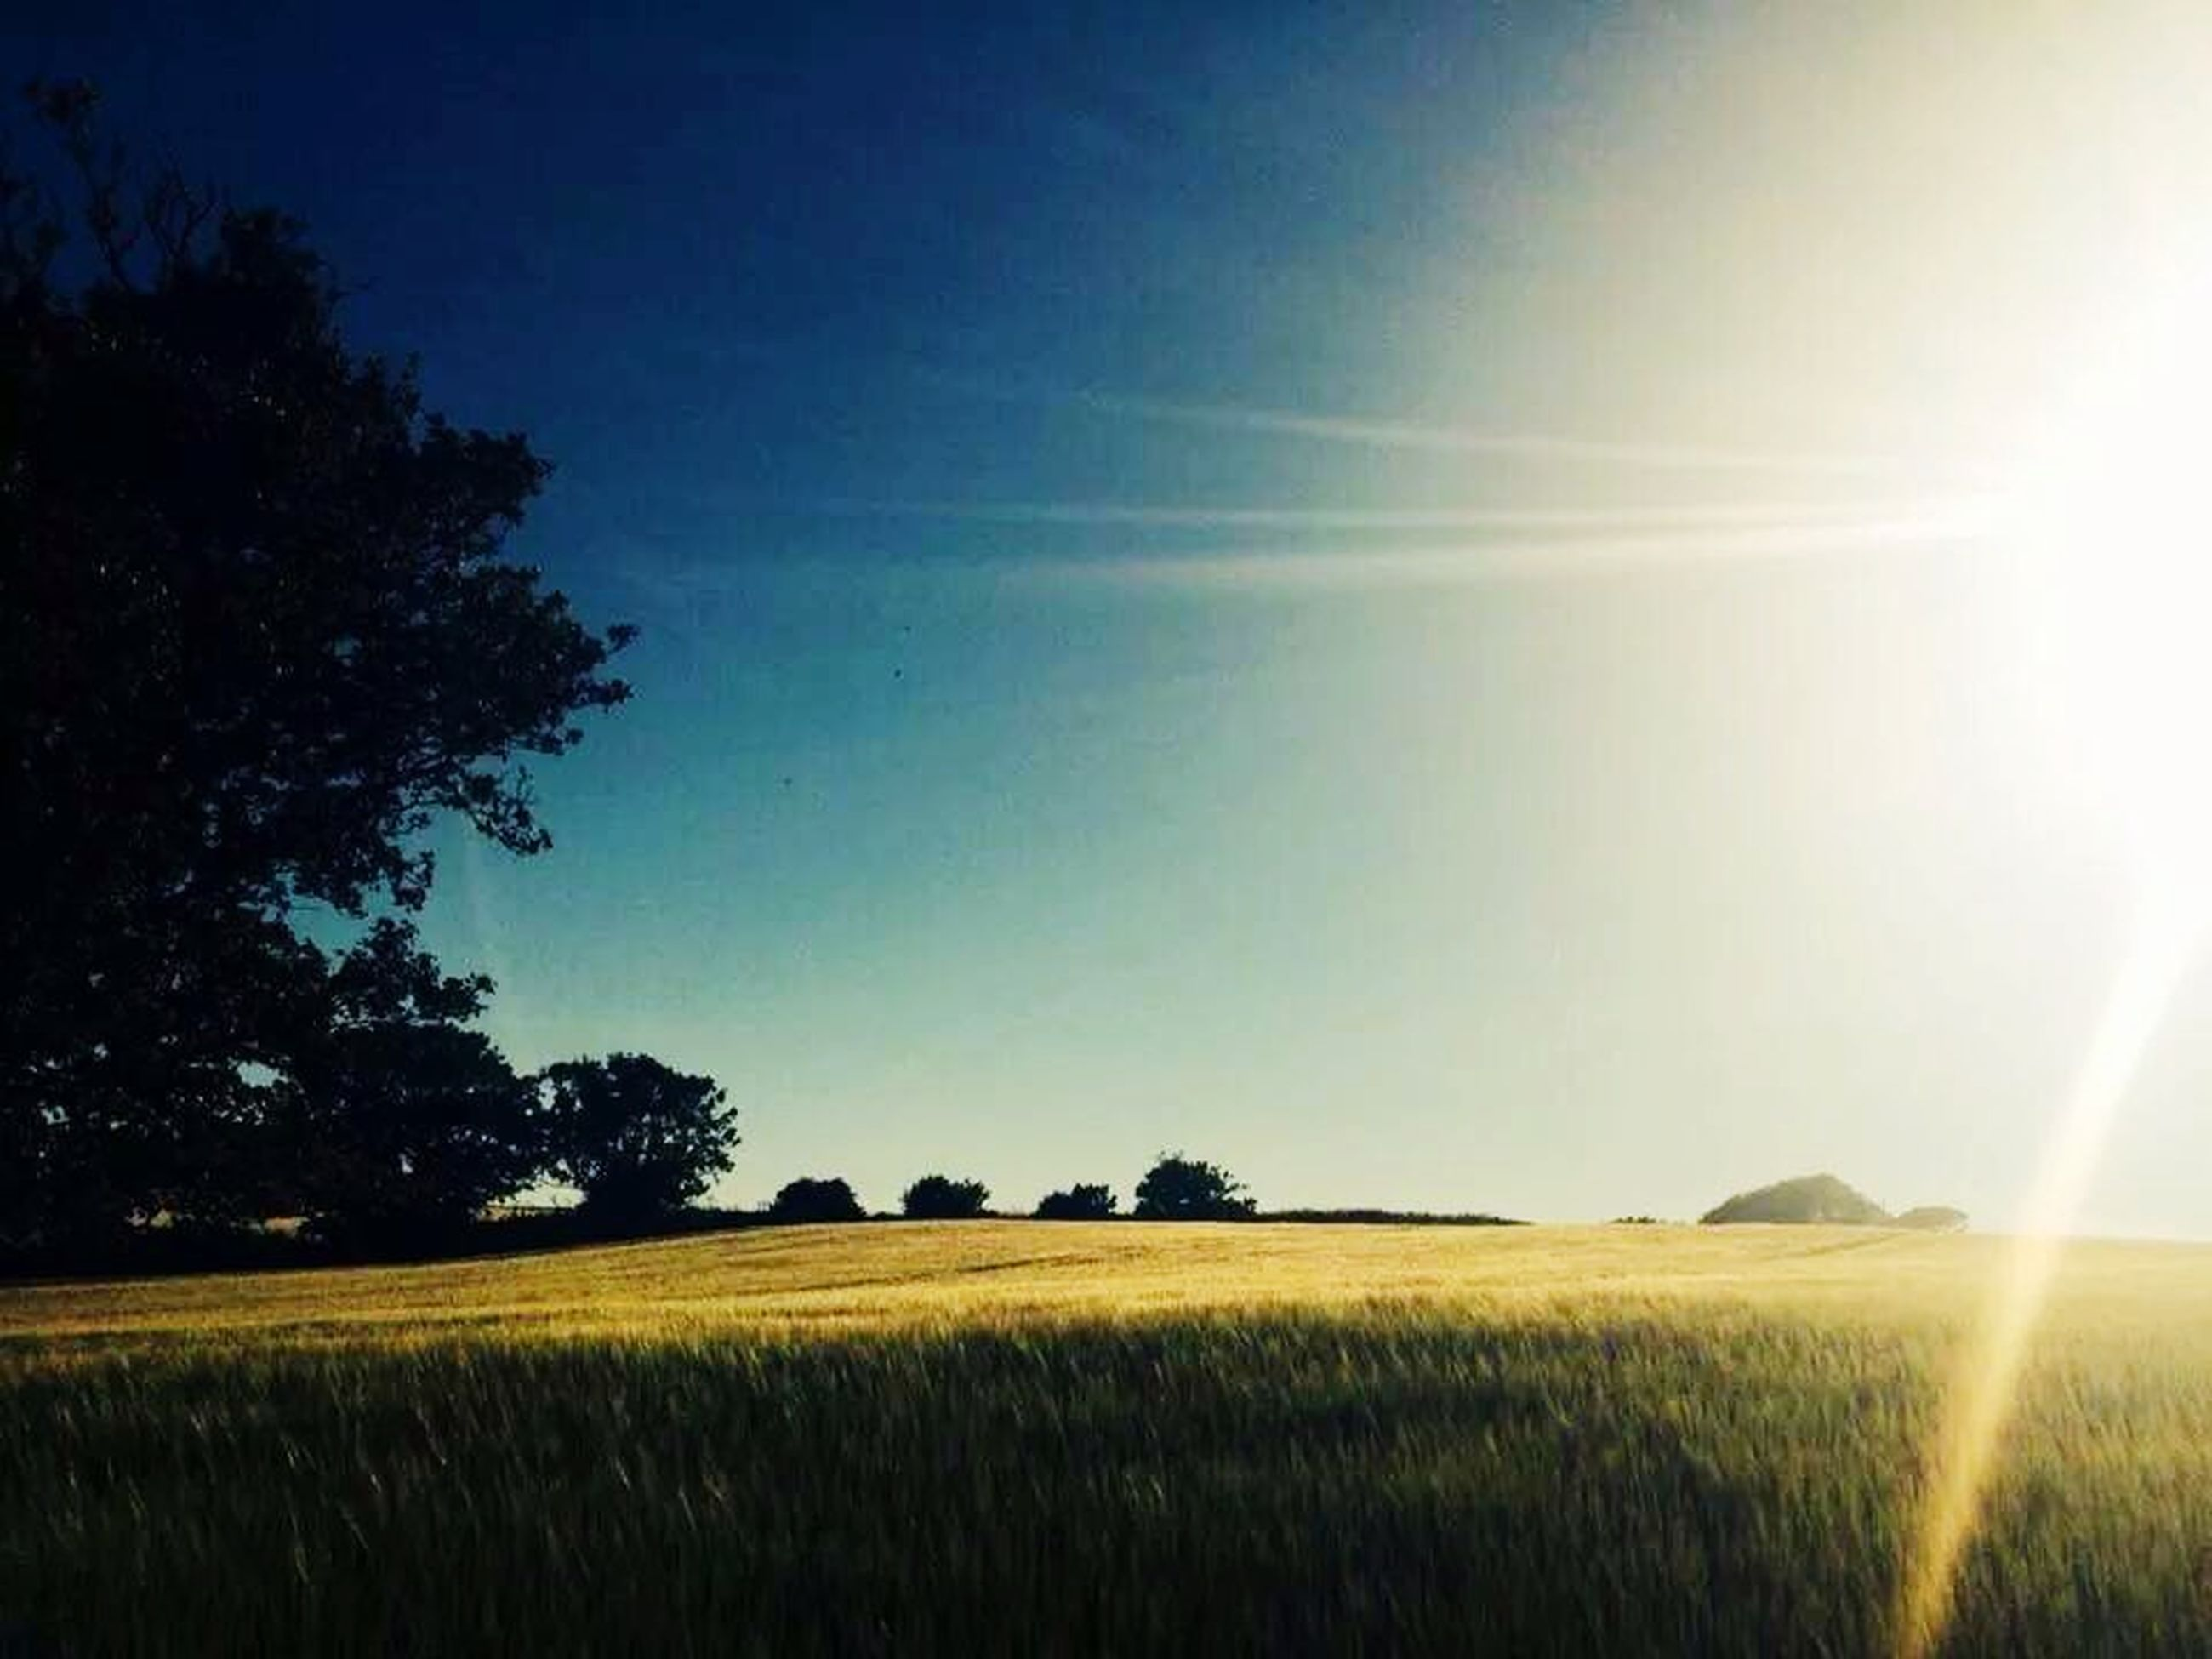 field, landscape, tranquil scene, tranquility, tree, rural scene, sunbeam, sun, beauty in nature, growth, sunlight, agriculture, scenics, grass, nature, farm, crop, clear sky, lens flare, sky